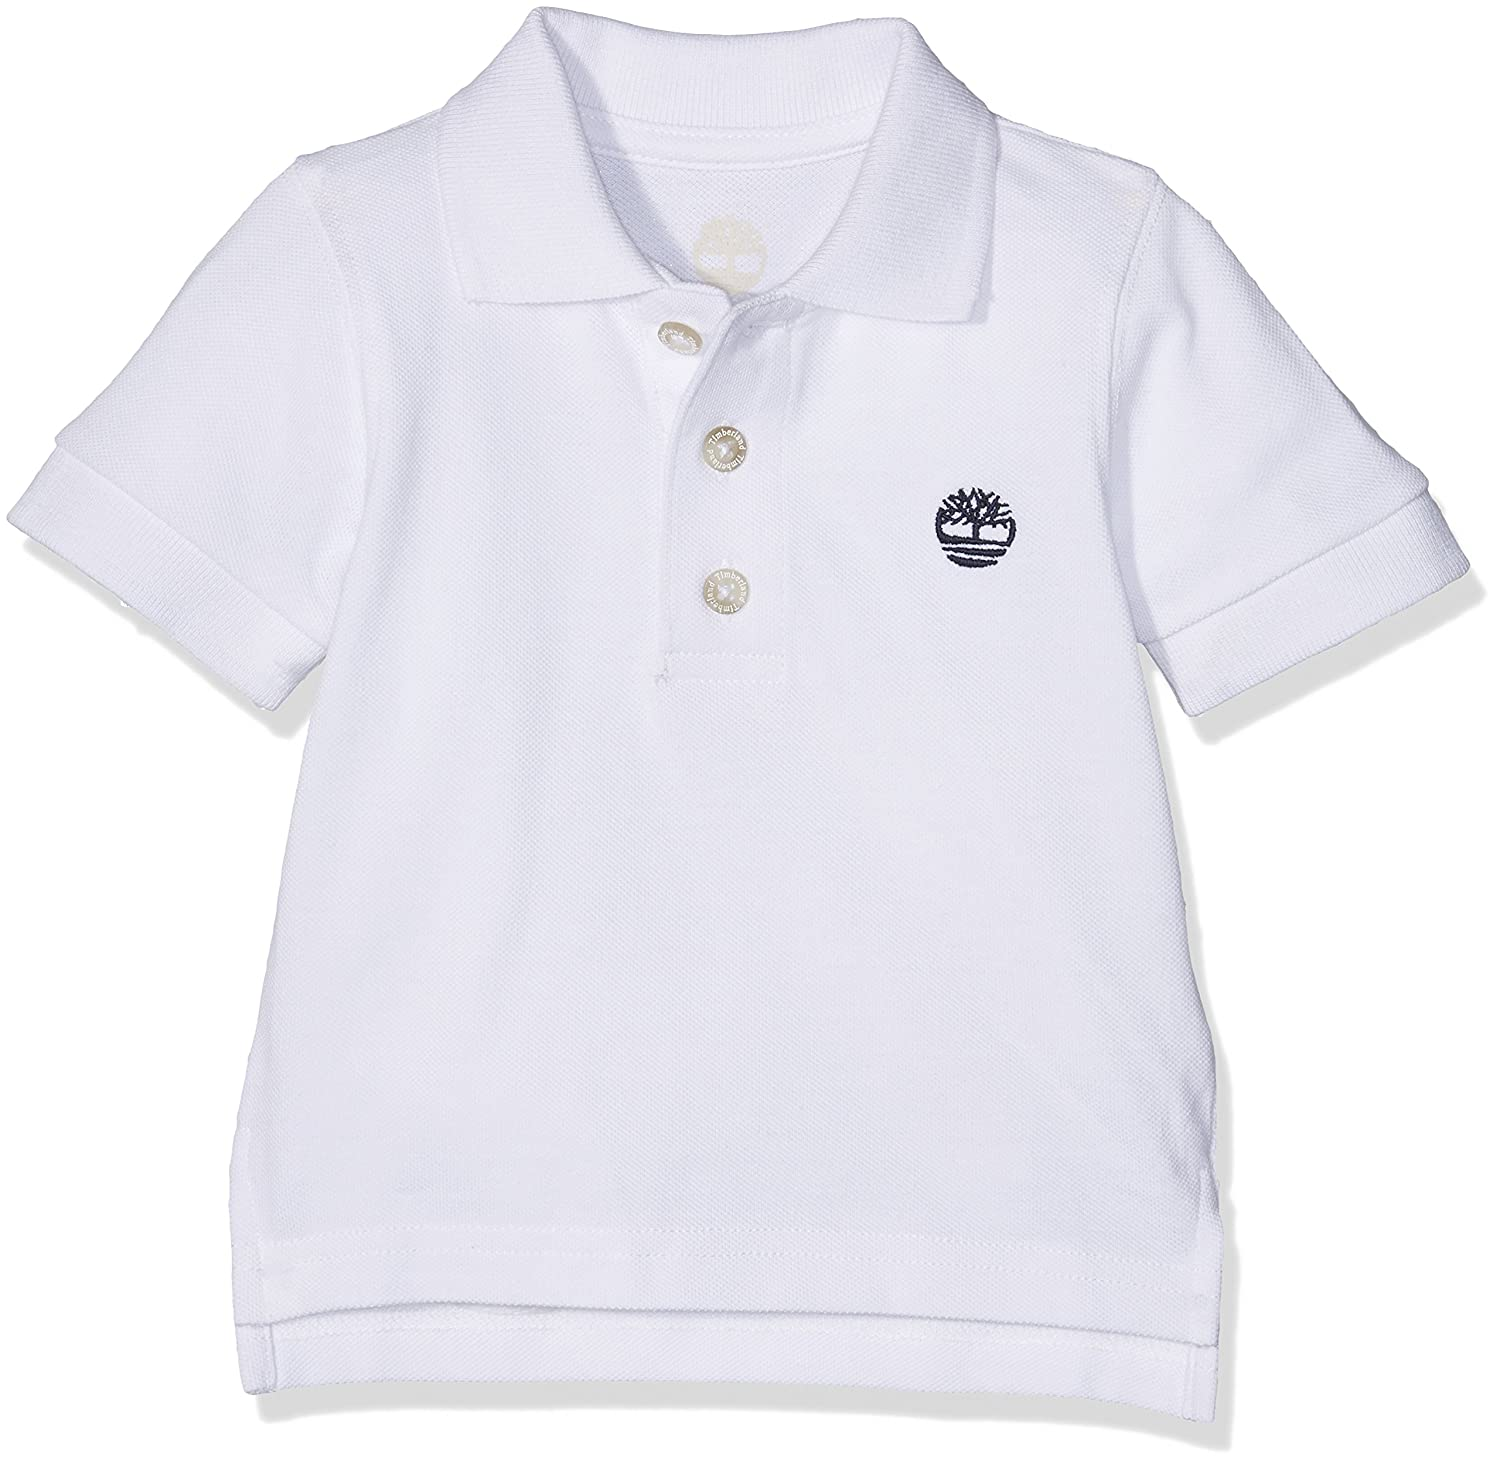 Timberland Short Sleeve Polo, T-Shirt Bébé Garçon Timberland T05G37 Polo Bébé garçon (Blanc) FR (Taille Fabricant: 2 Ans)